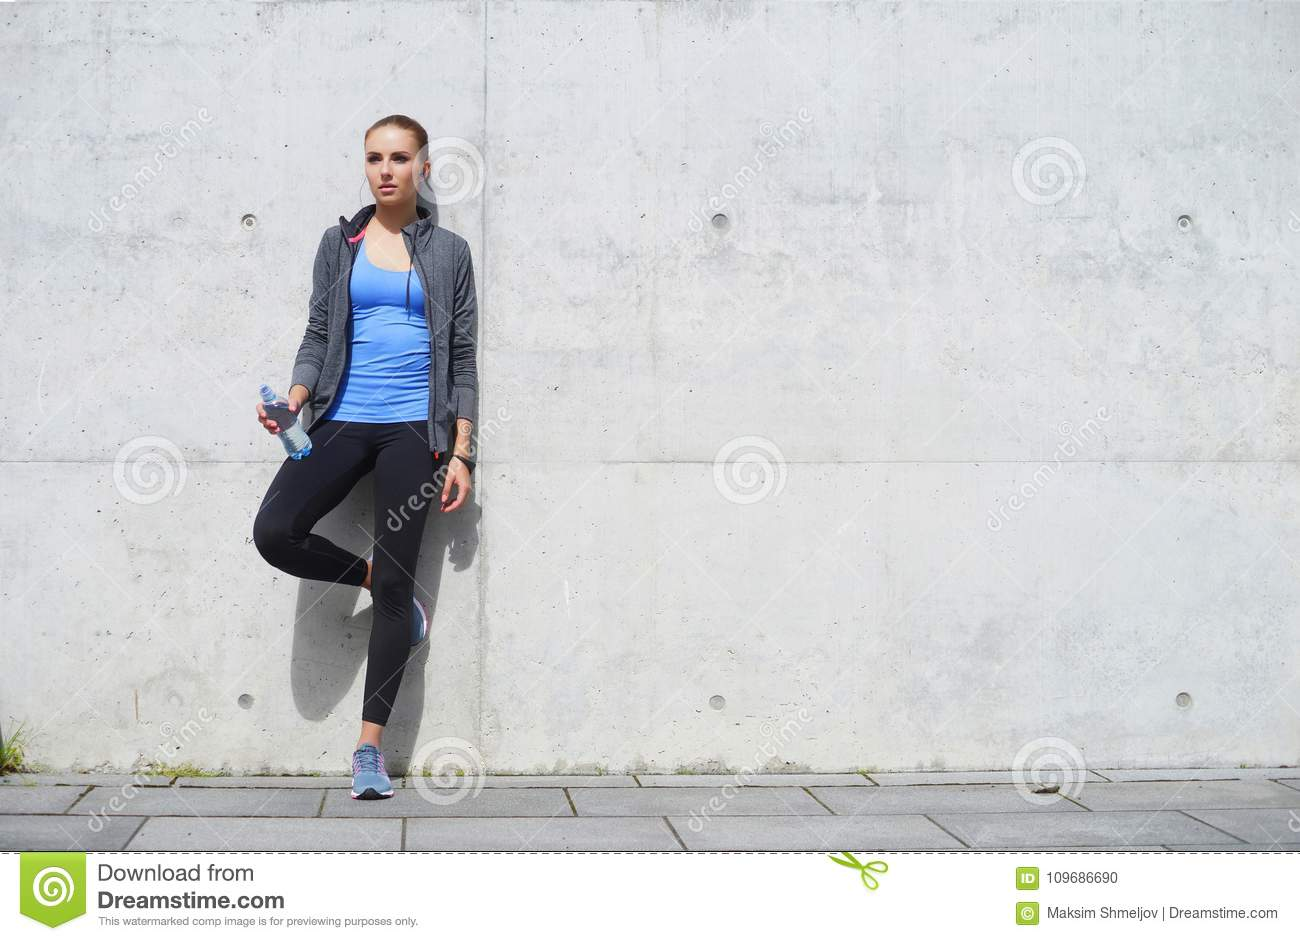 Young, fit and sporty woman resting after the training. Fitness, sport, urban jogging and healthy lifestyle concept.